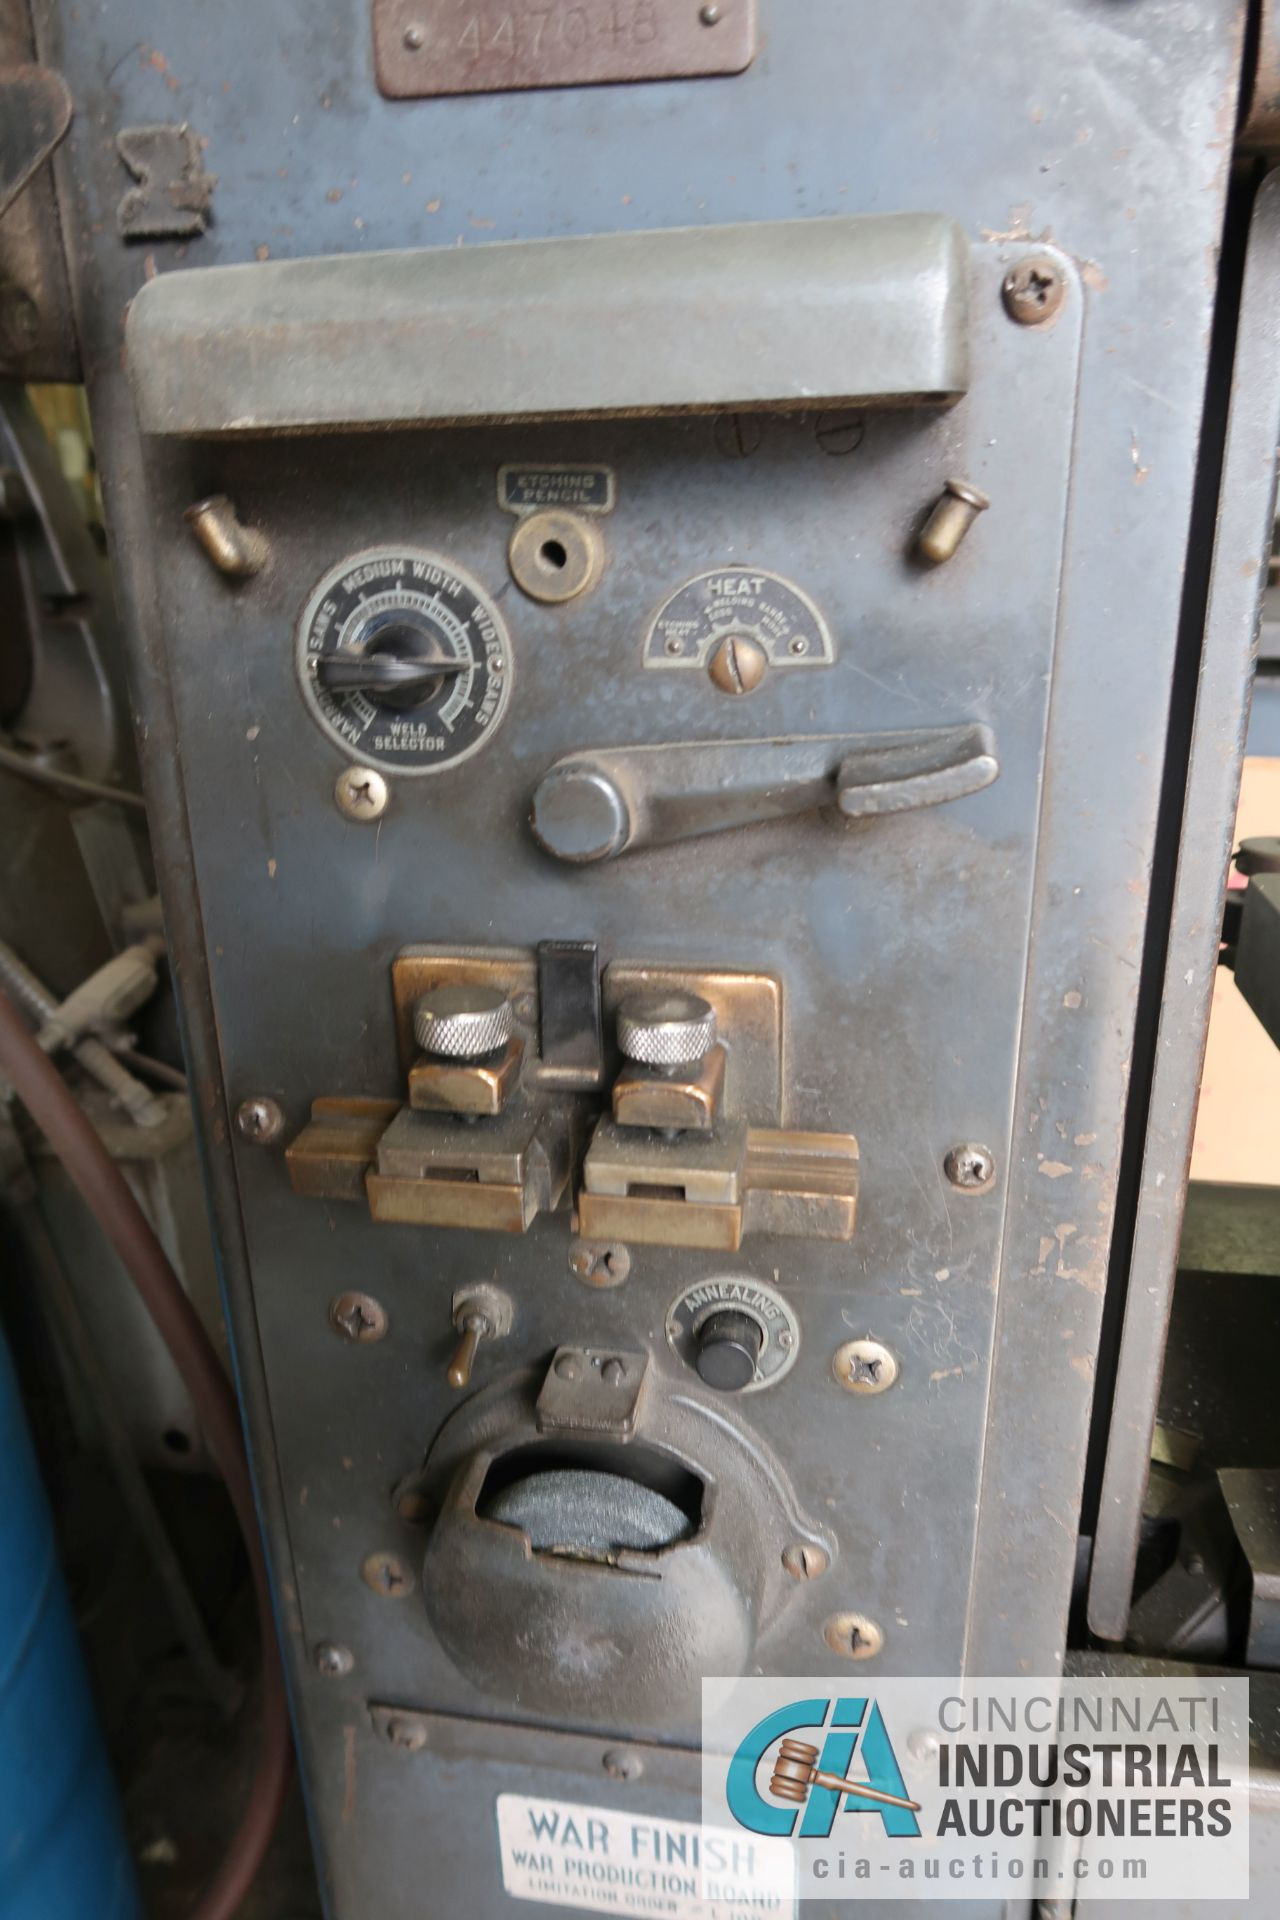 """16"""" DOALL MODEL ML VERTICAL BAND SAW; S/N N/A, WITH BLADE WELDER - Image 2 of 2"""